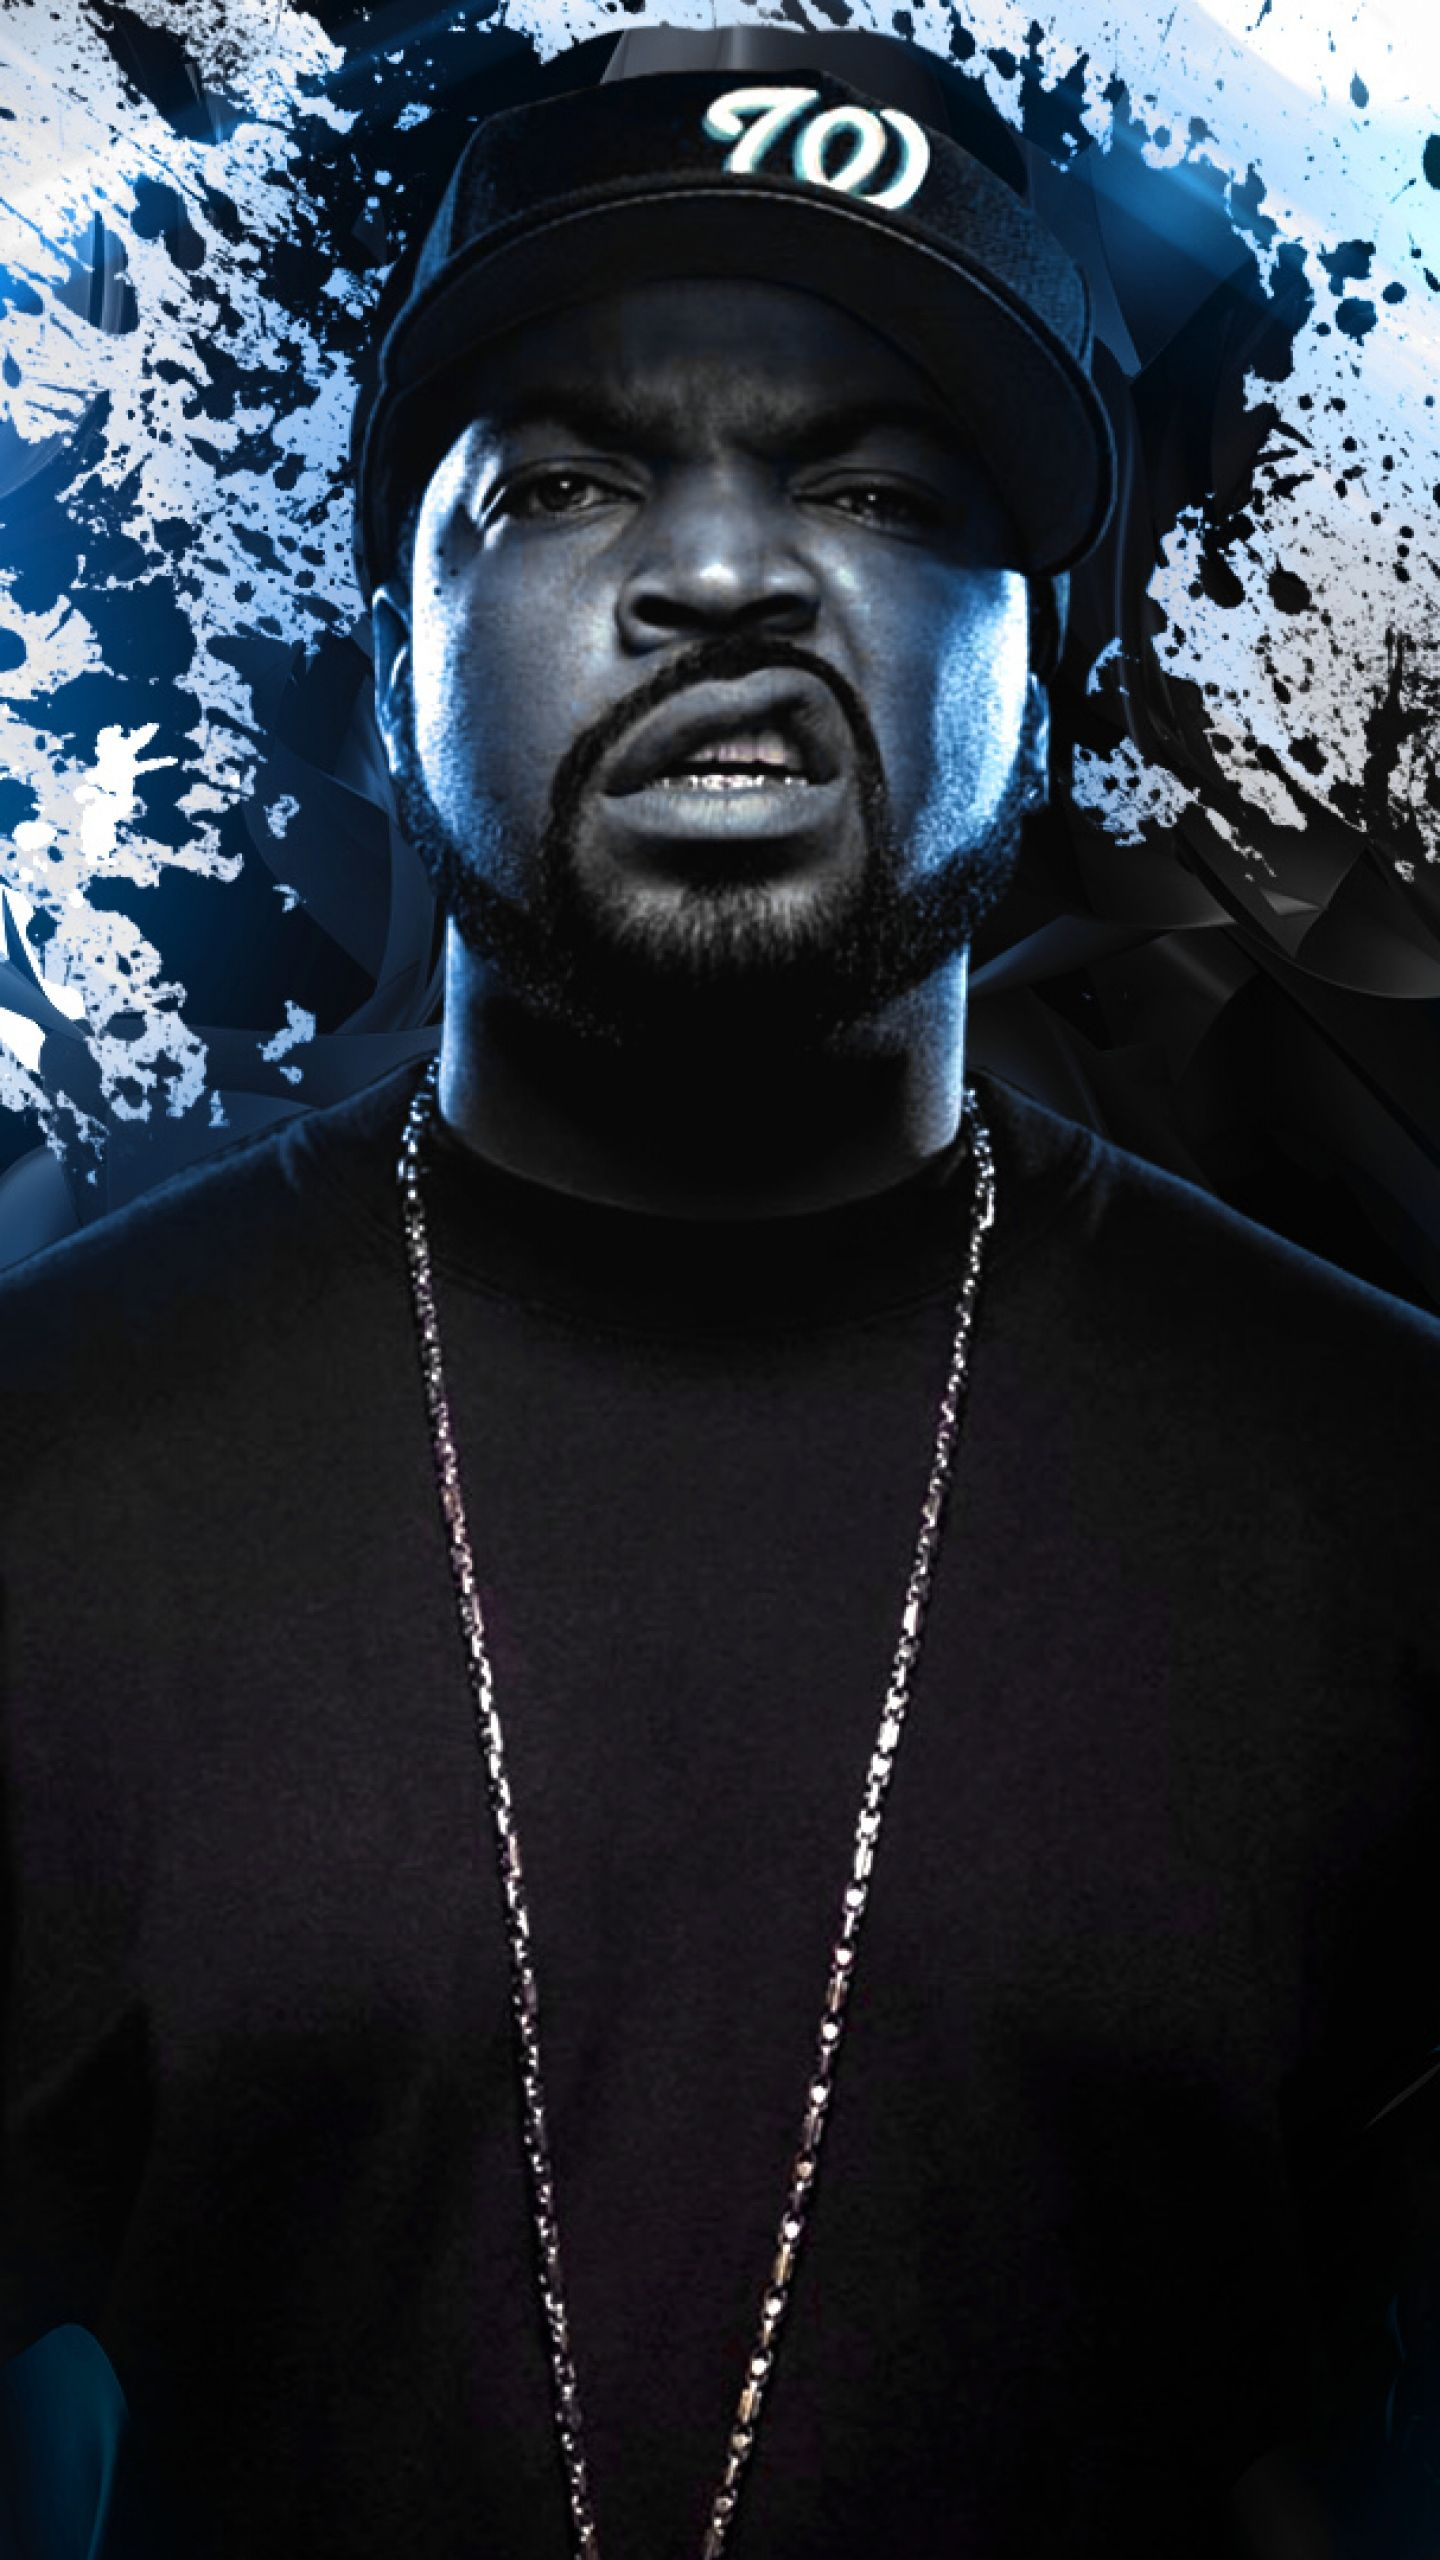 1440x2560 Ice Cube Wallpapers #S73ISQ5 (1440x2560 px) | WallpapersExpert.com